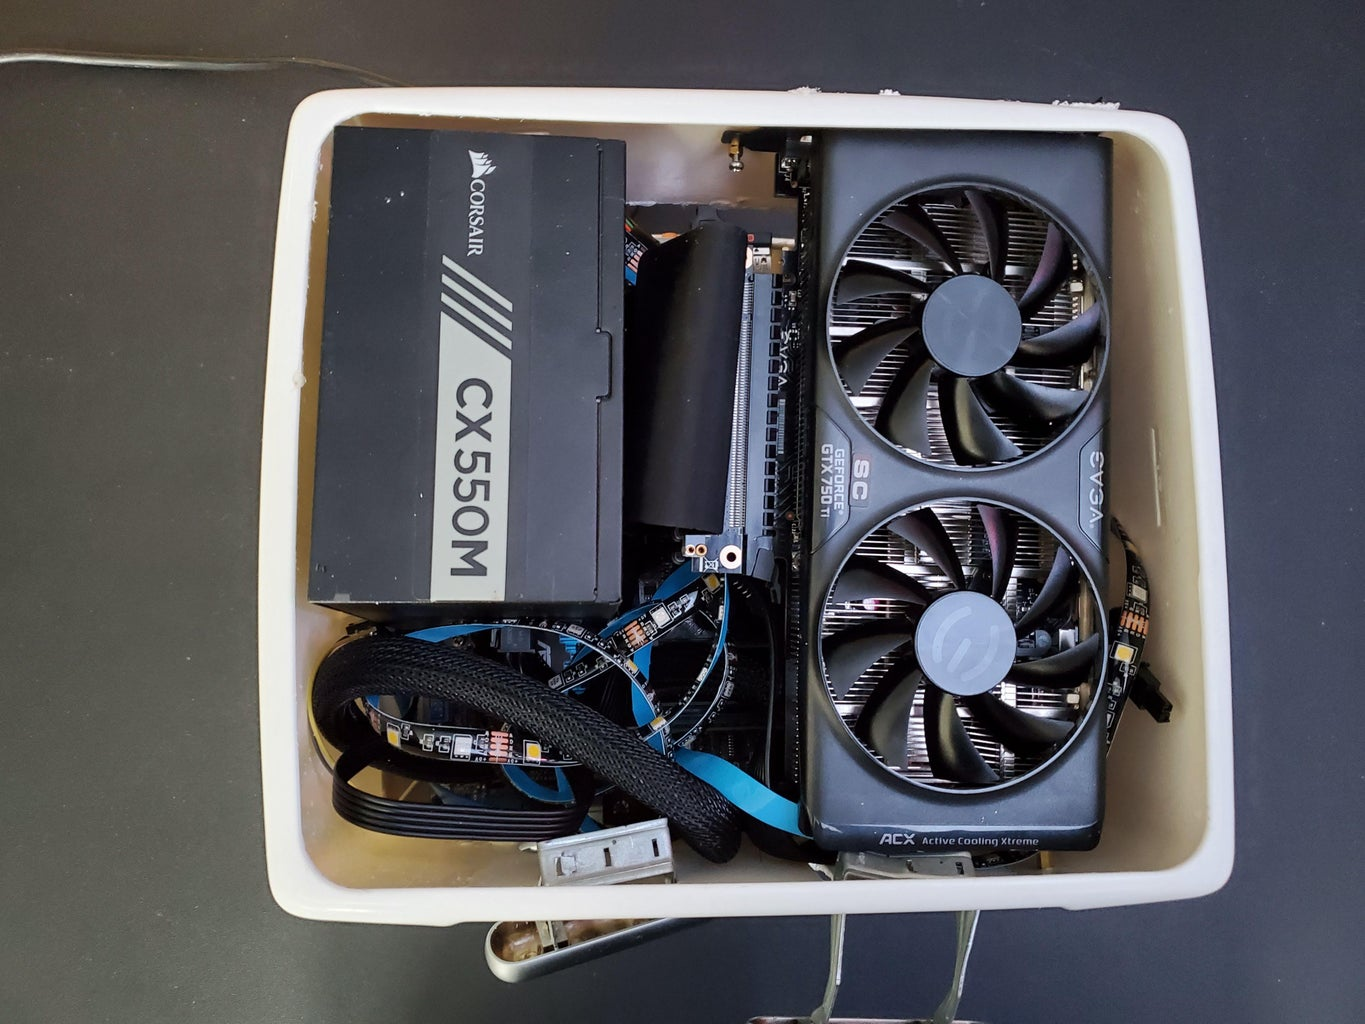 Mounting the GPU and Power Supply